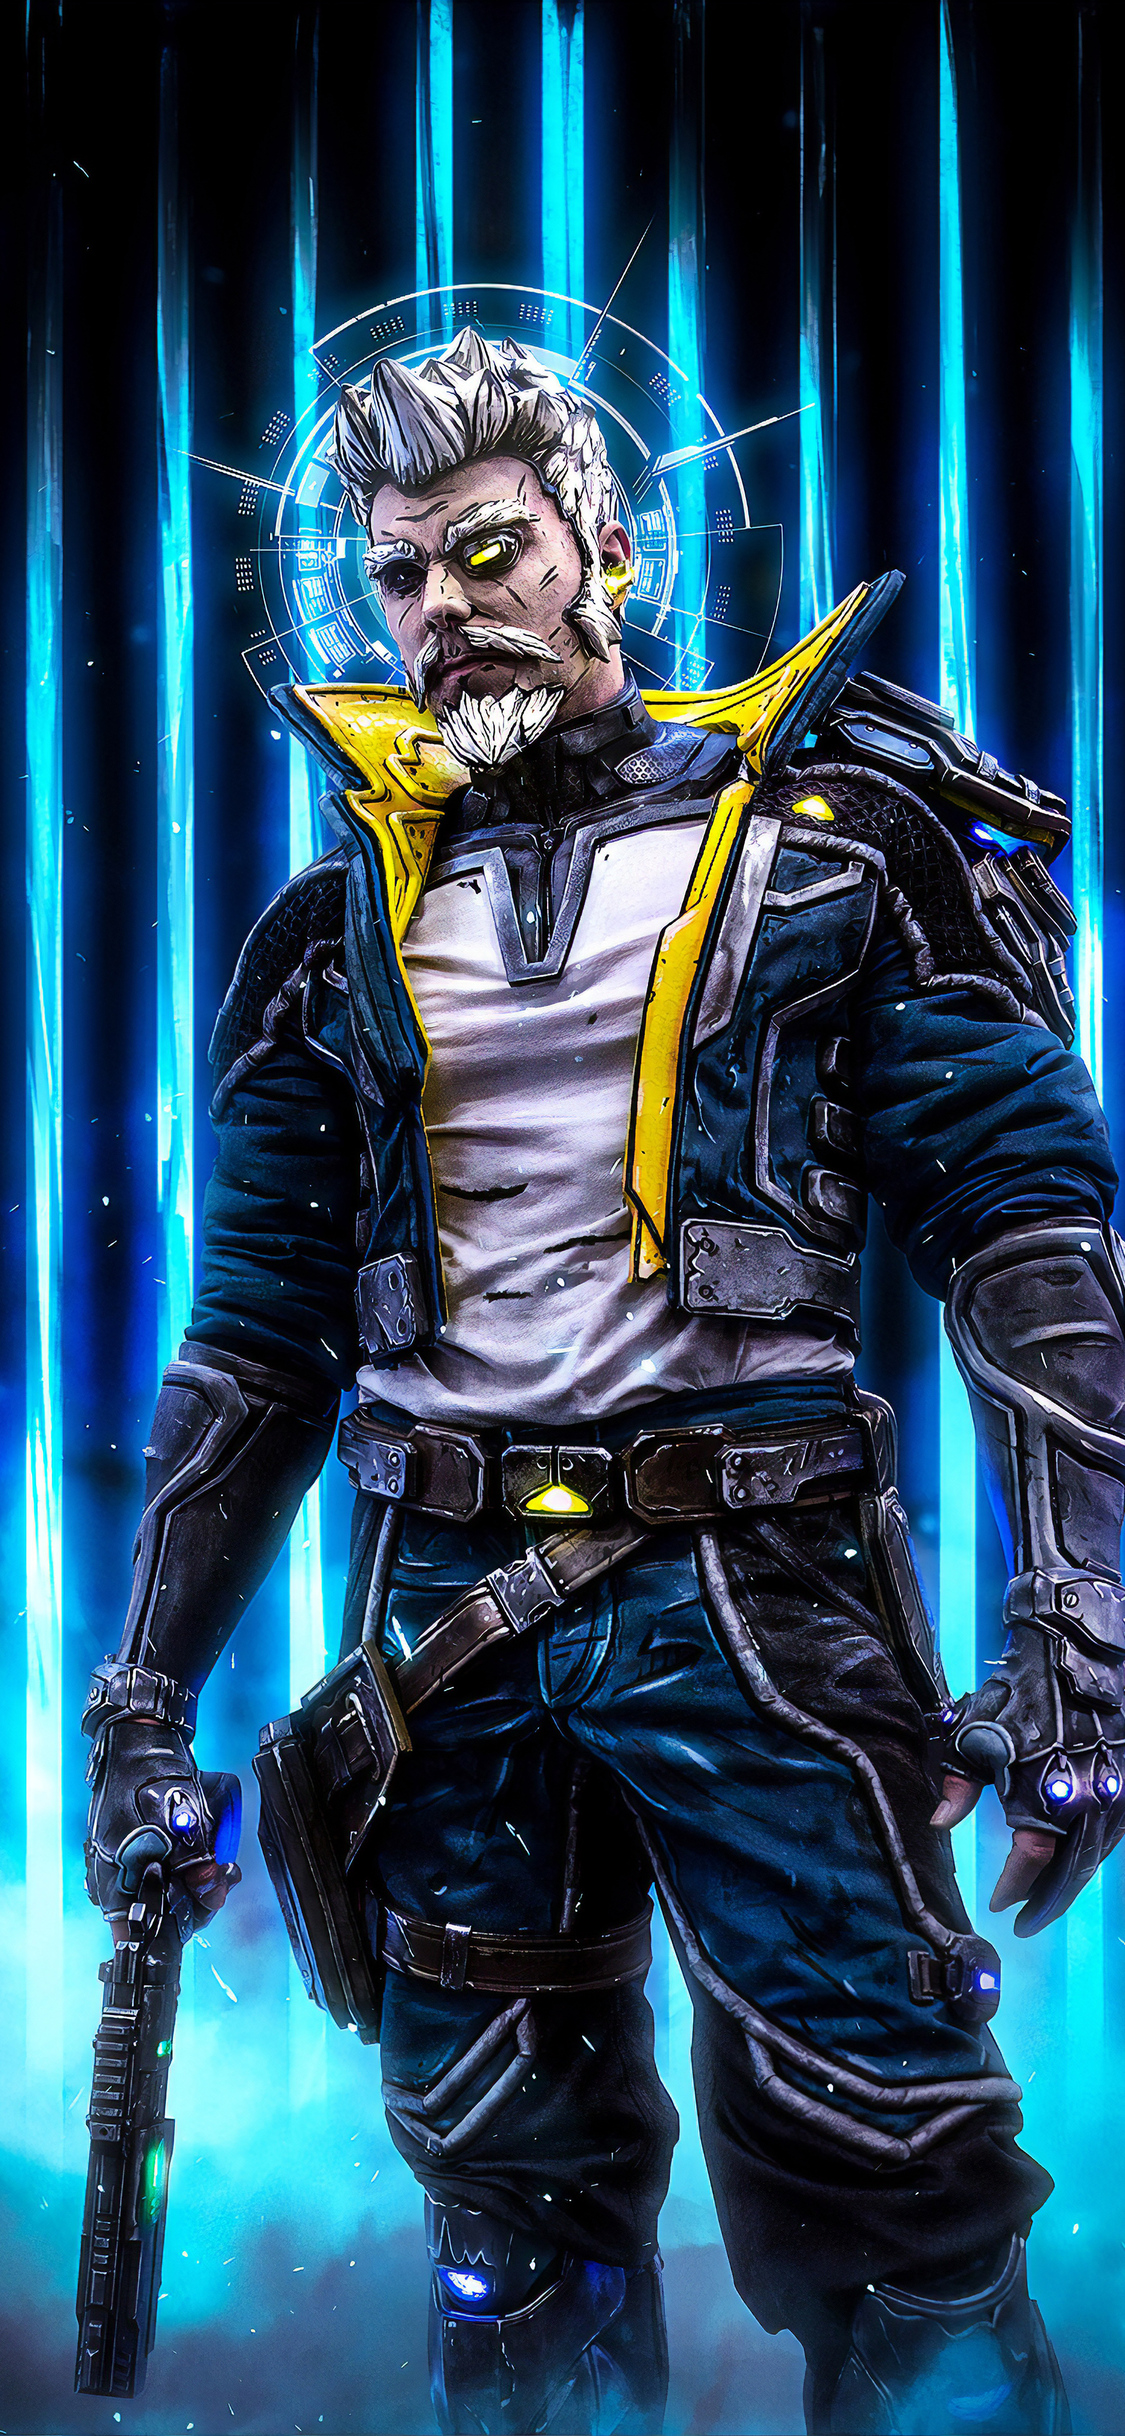 1125x2436 Zane Flynt Borderlands 3 Iphone Xs Iphone 10